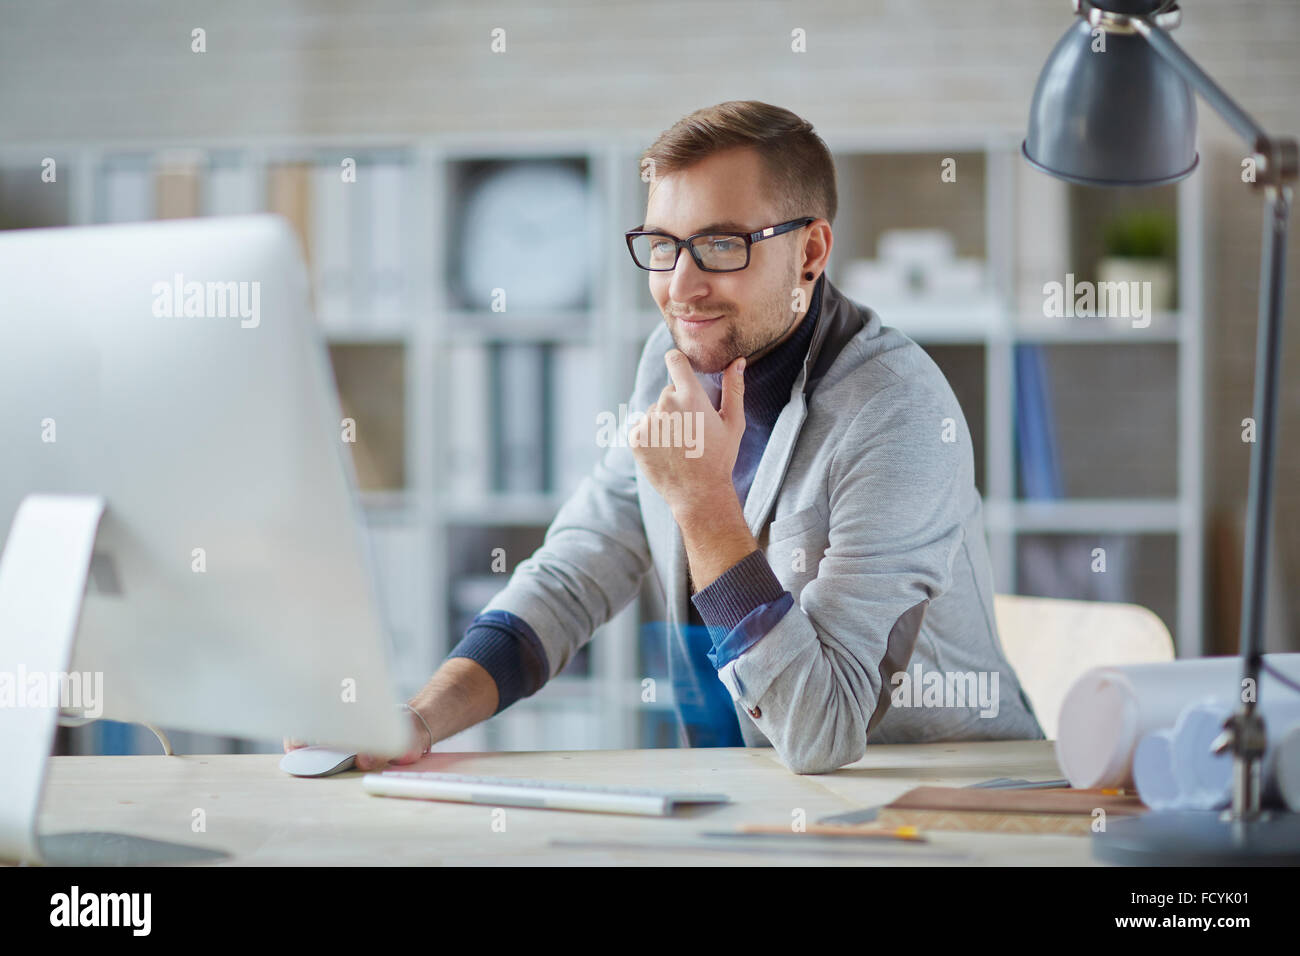 Young businessman in eyeglasses networking in office - Stock Image